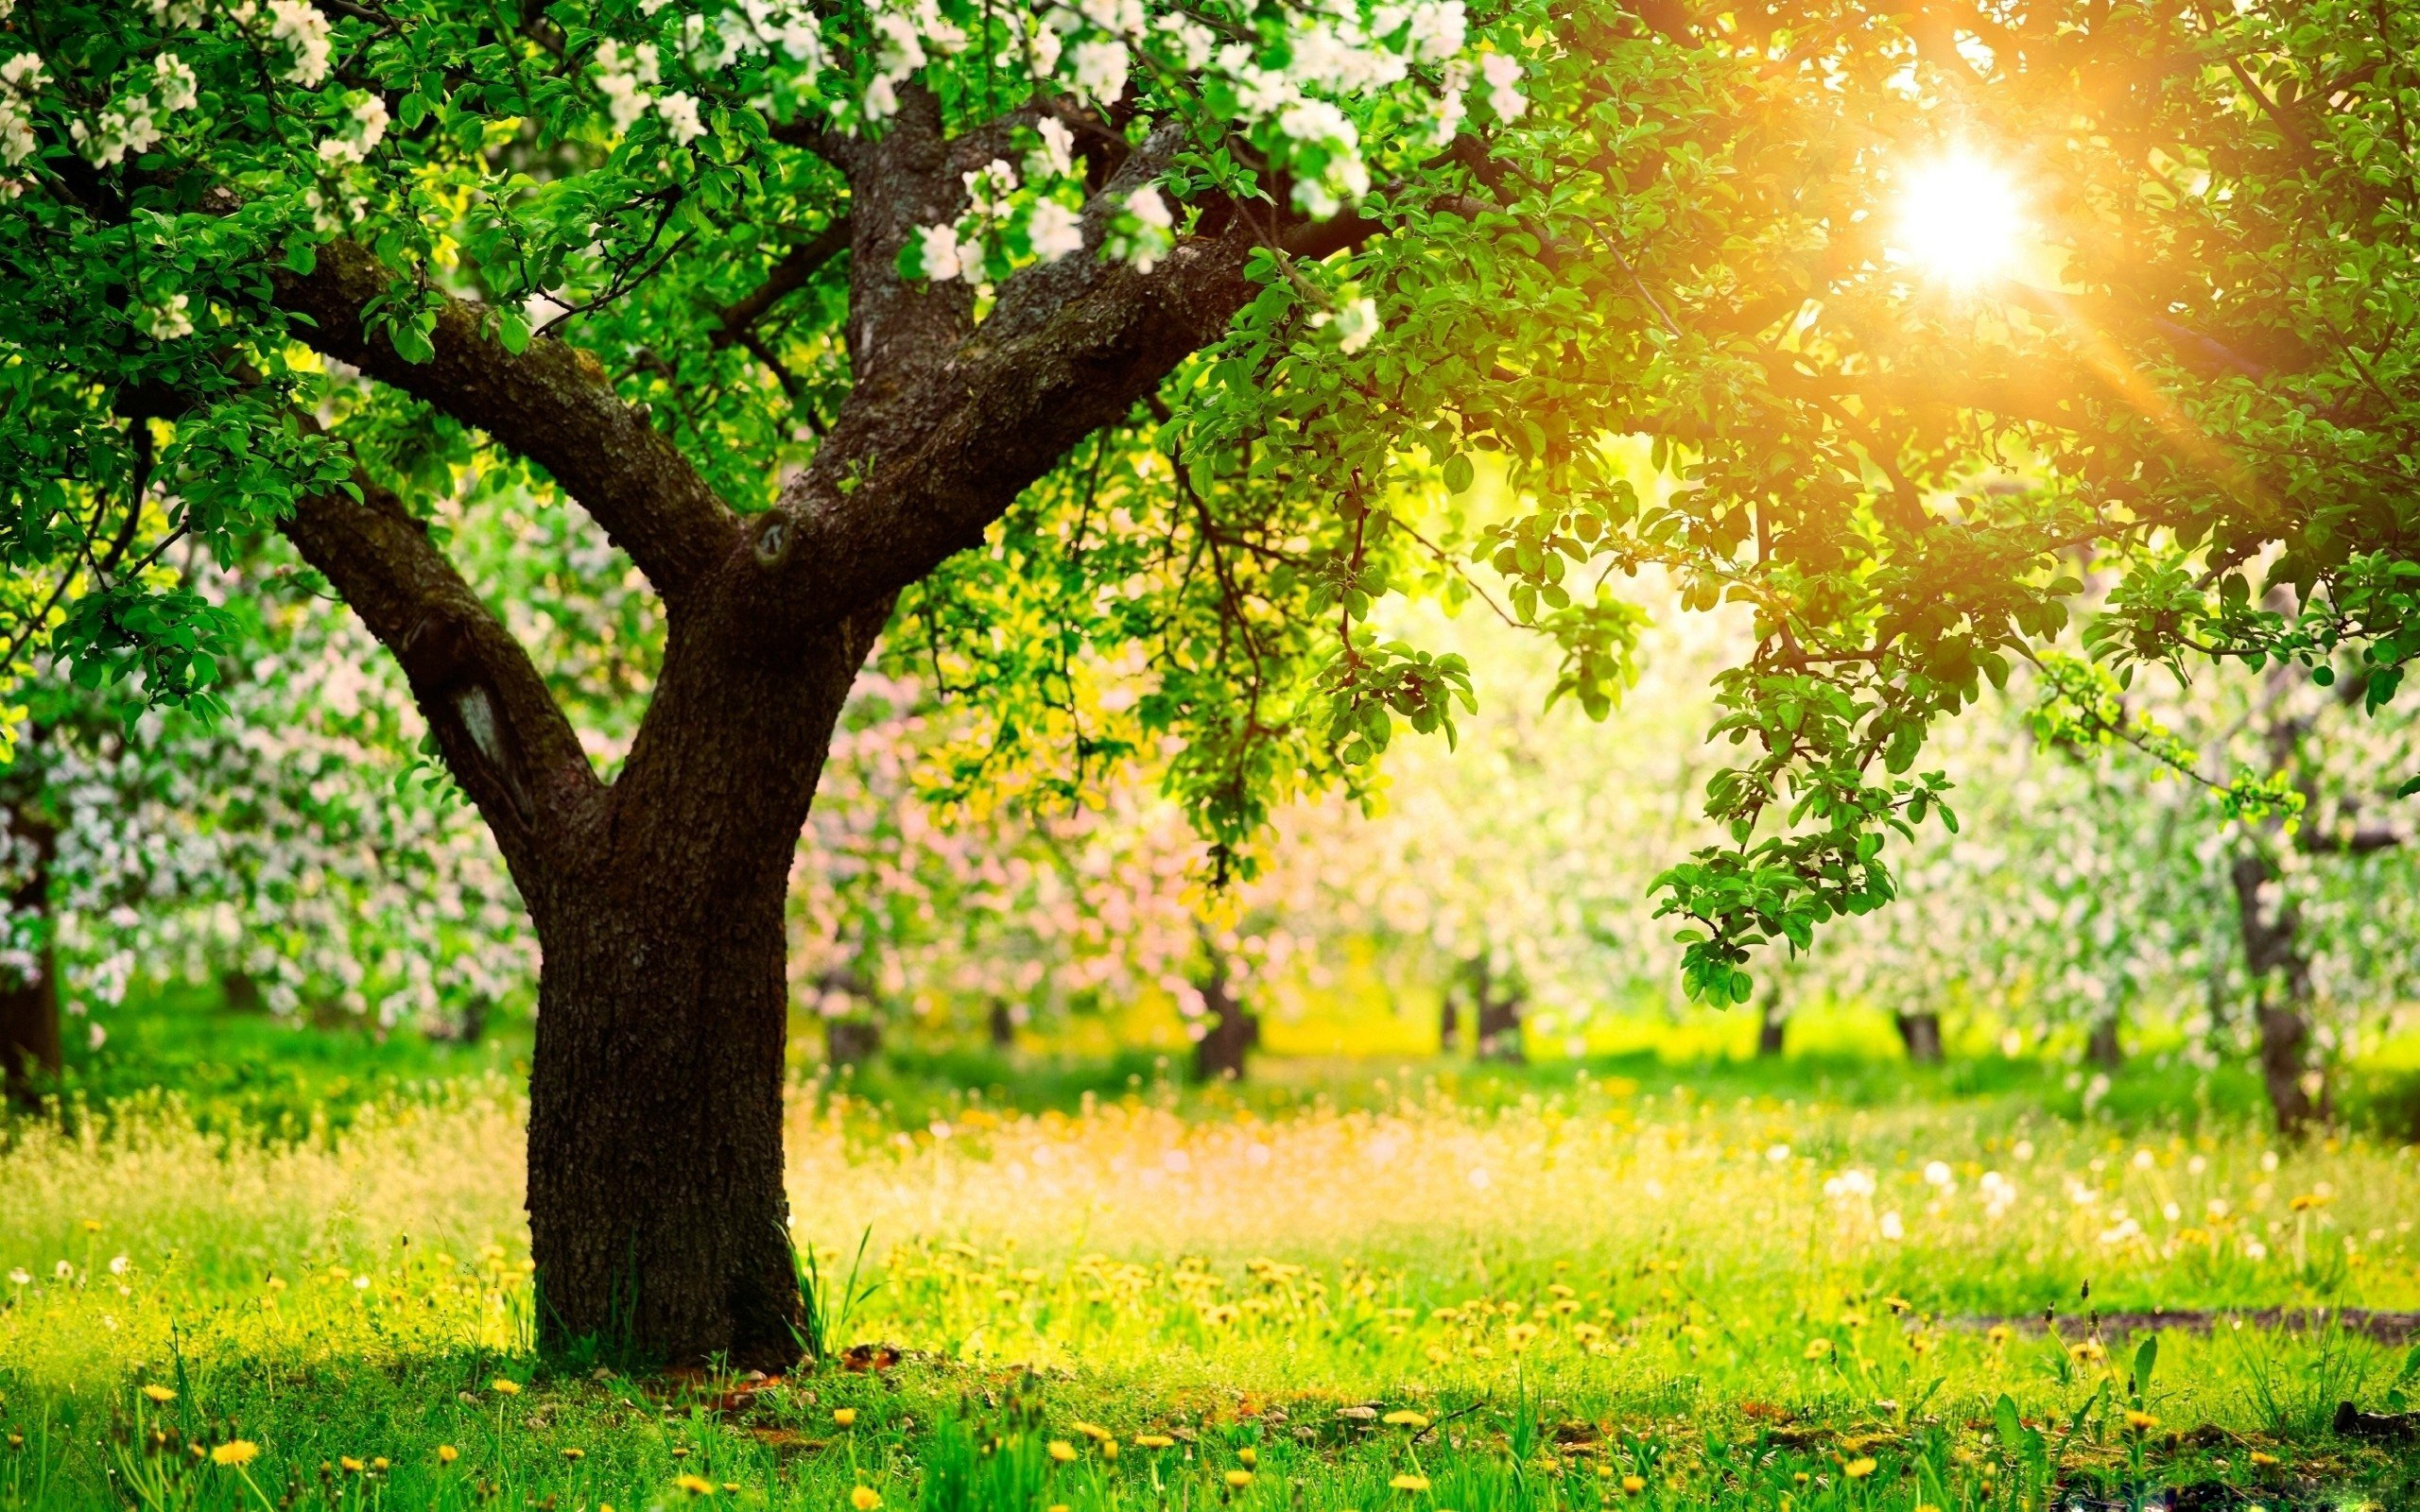 Spring Wallpapers HD download 2560x1600